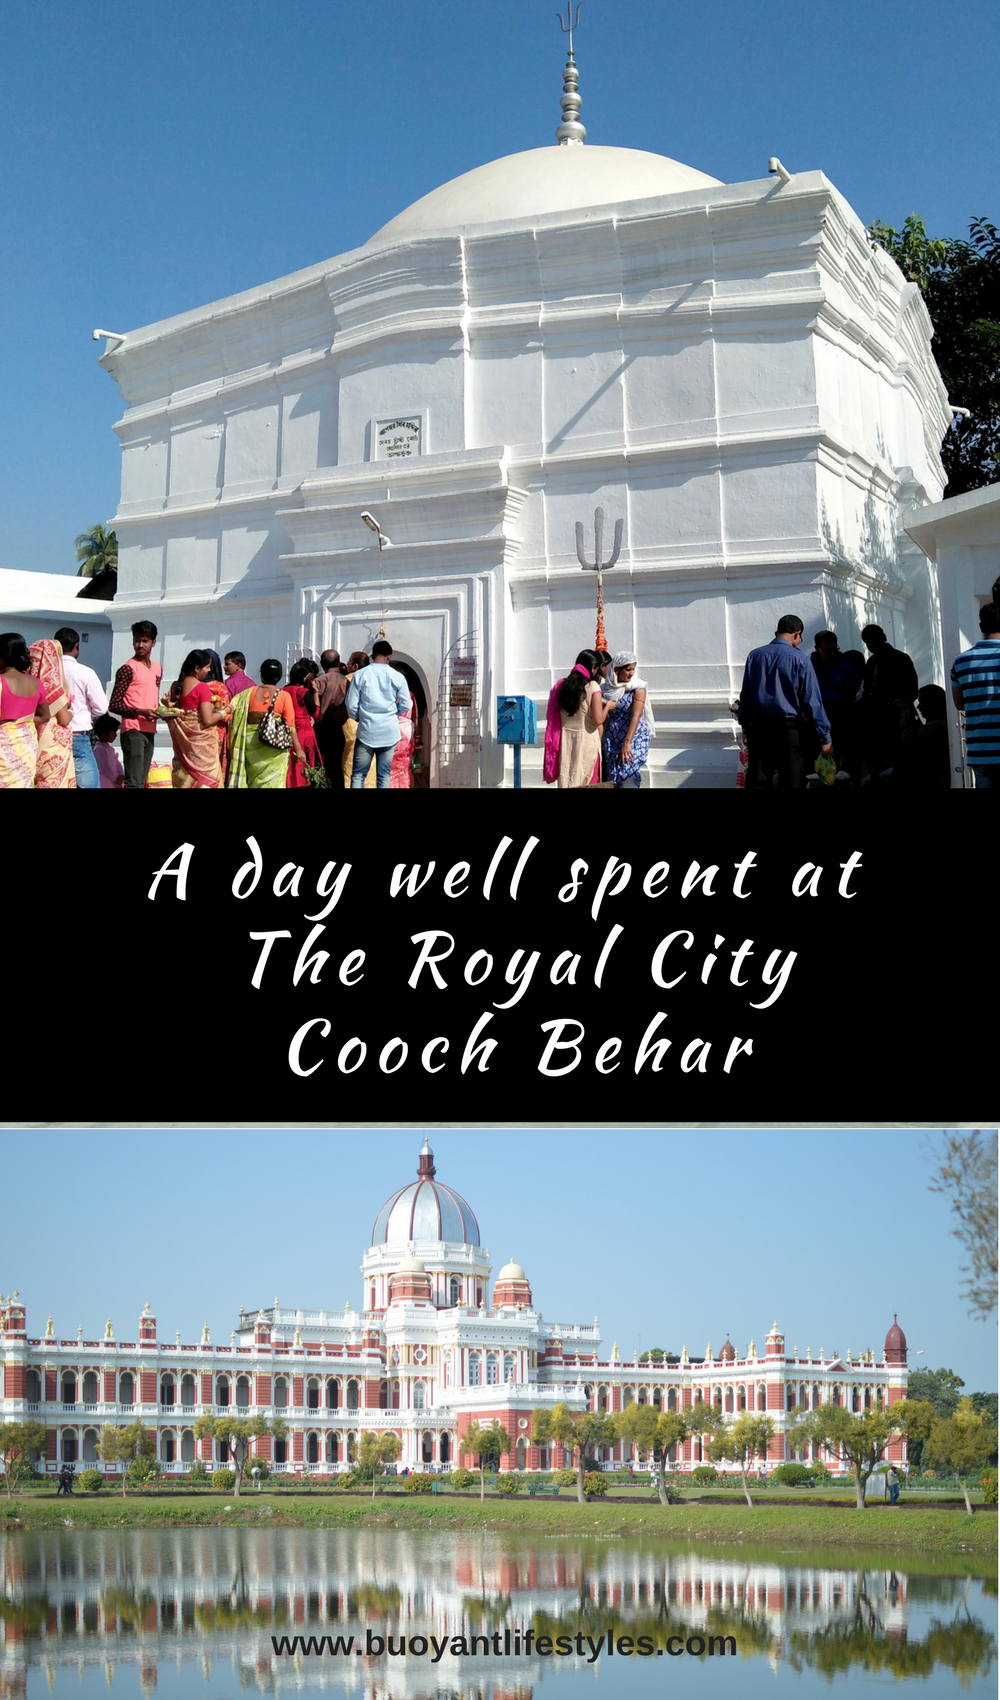 A day well spent at The Royal City Cooch Behar